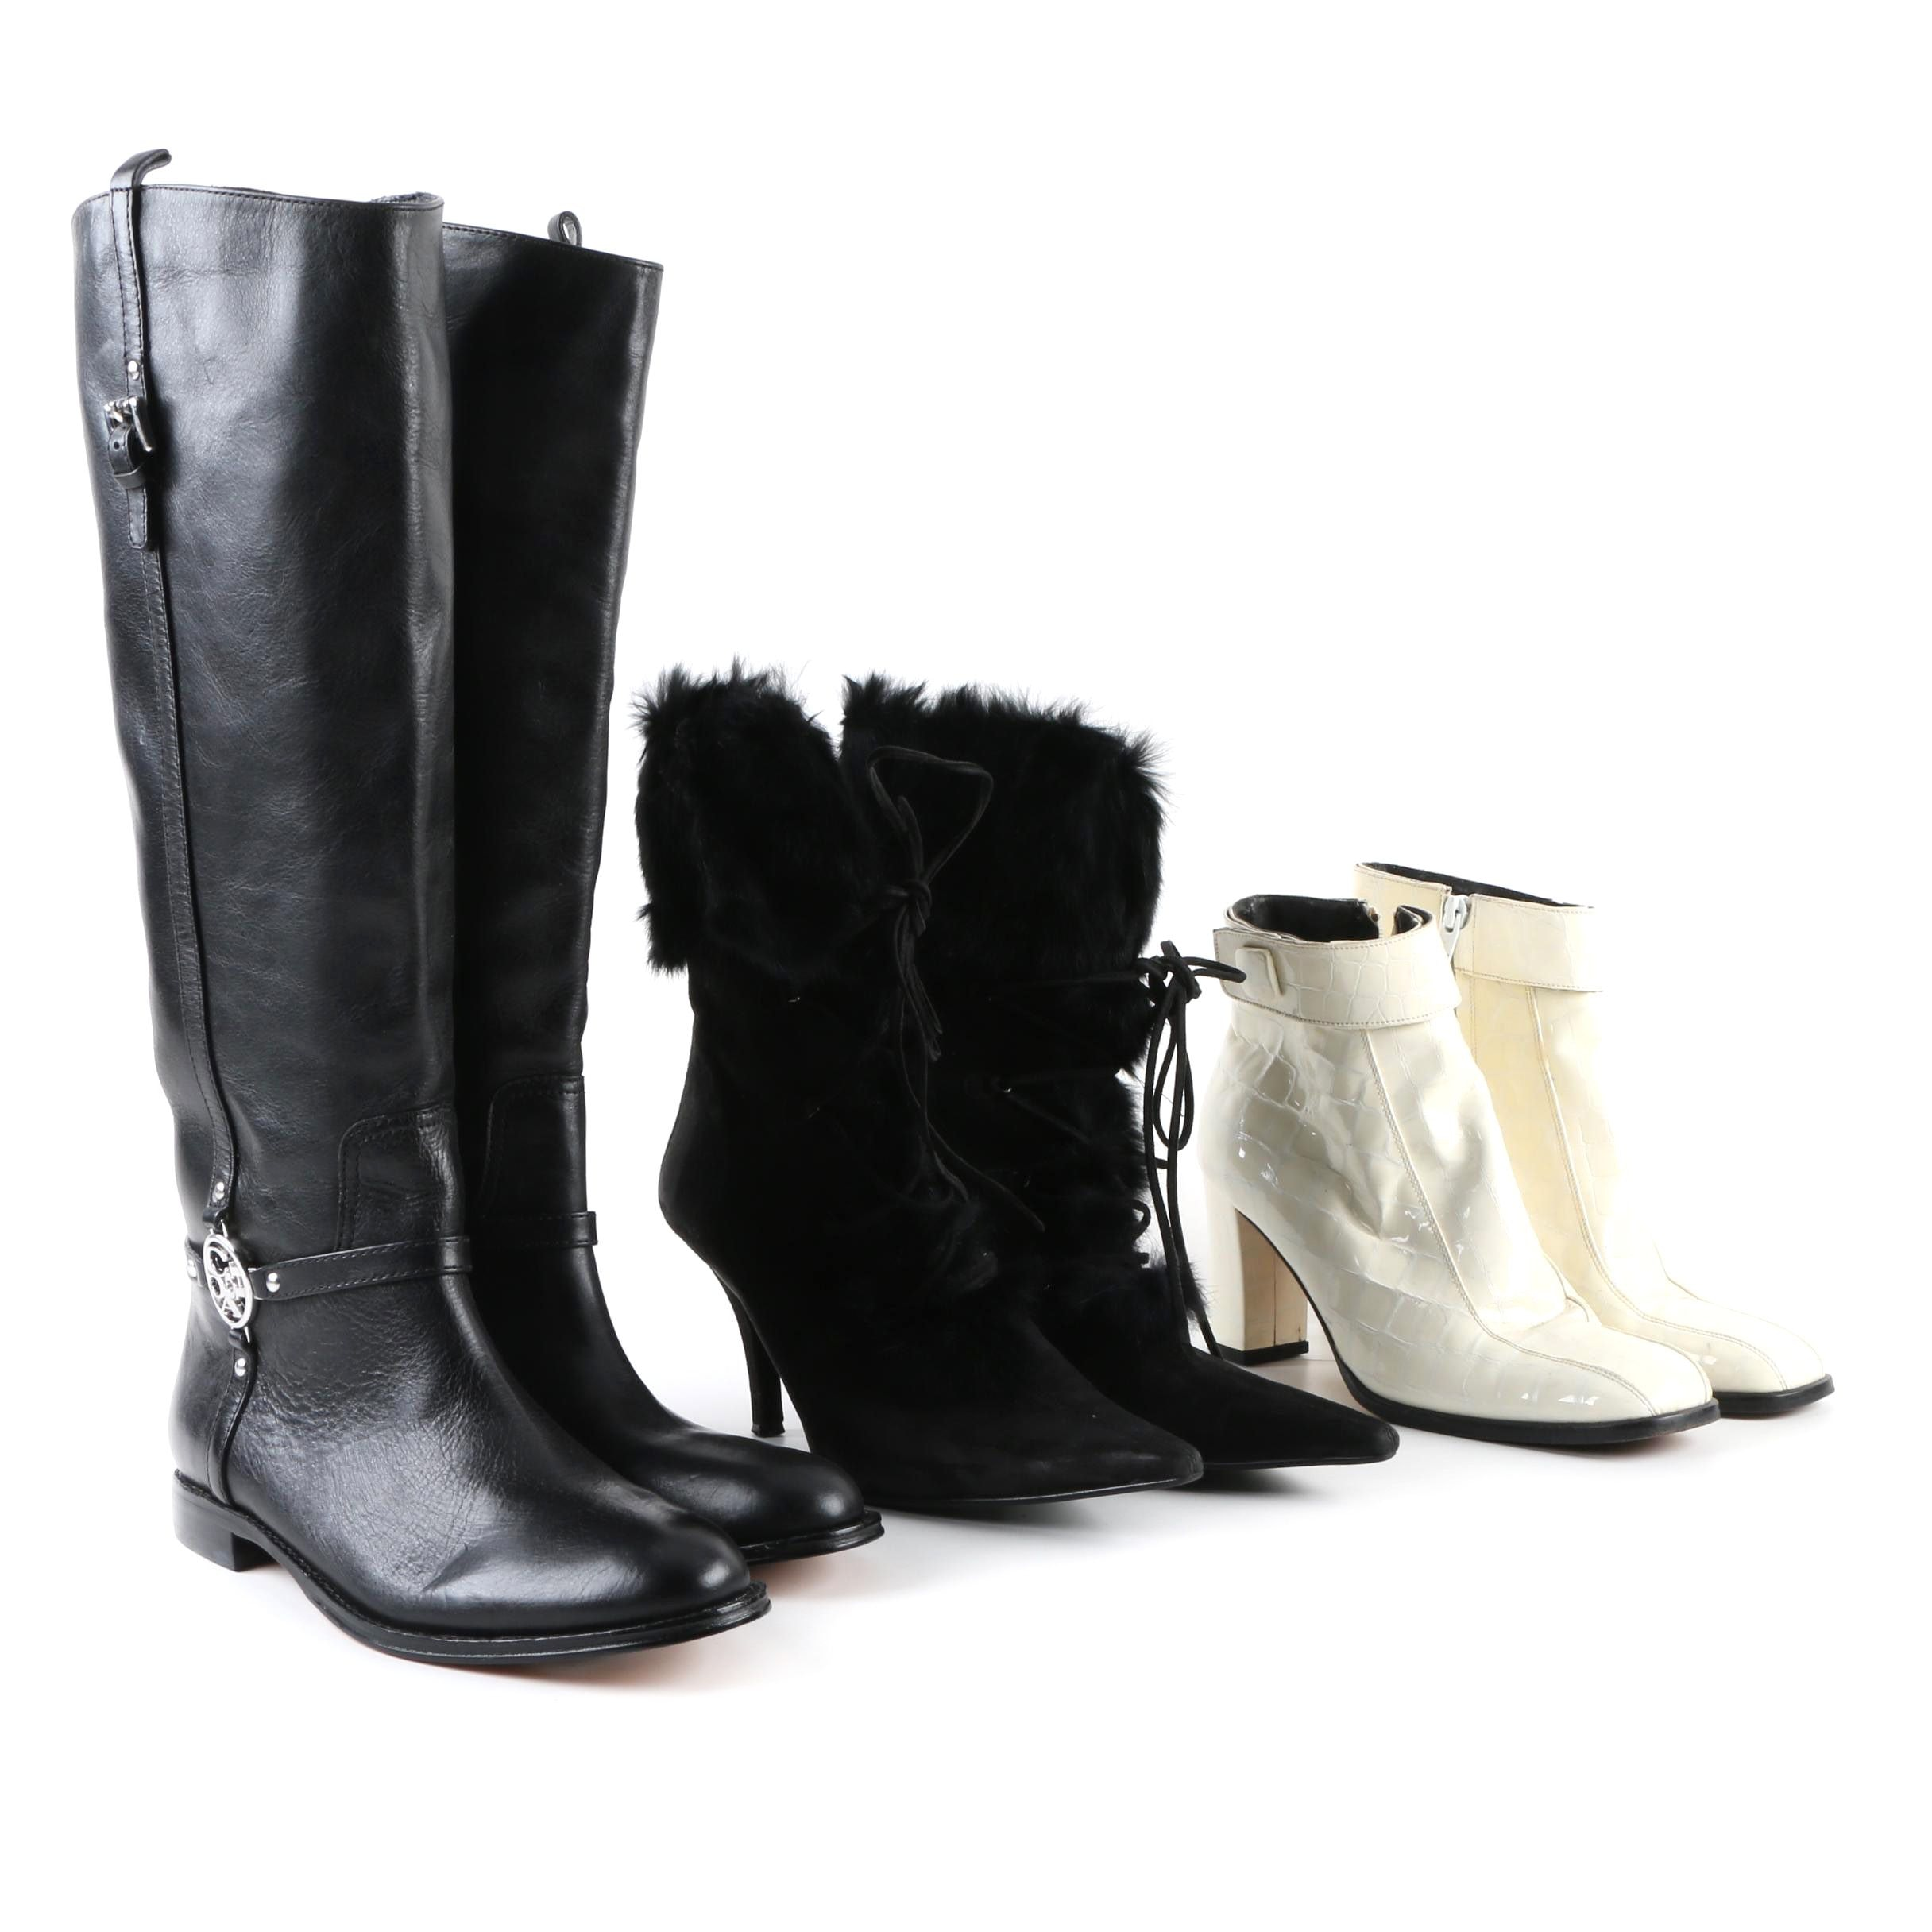 Women's Coach, Charles David and Enzo Angiolini Boots